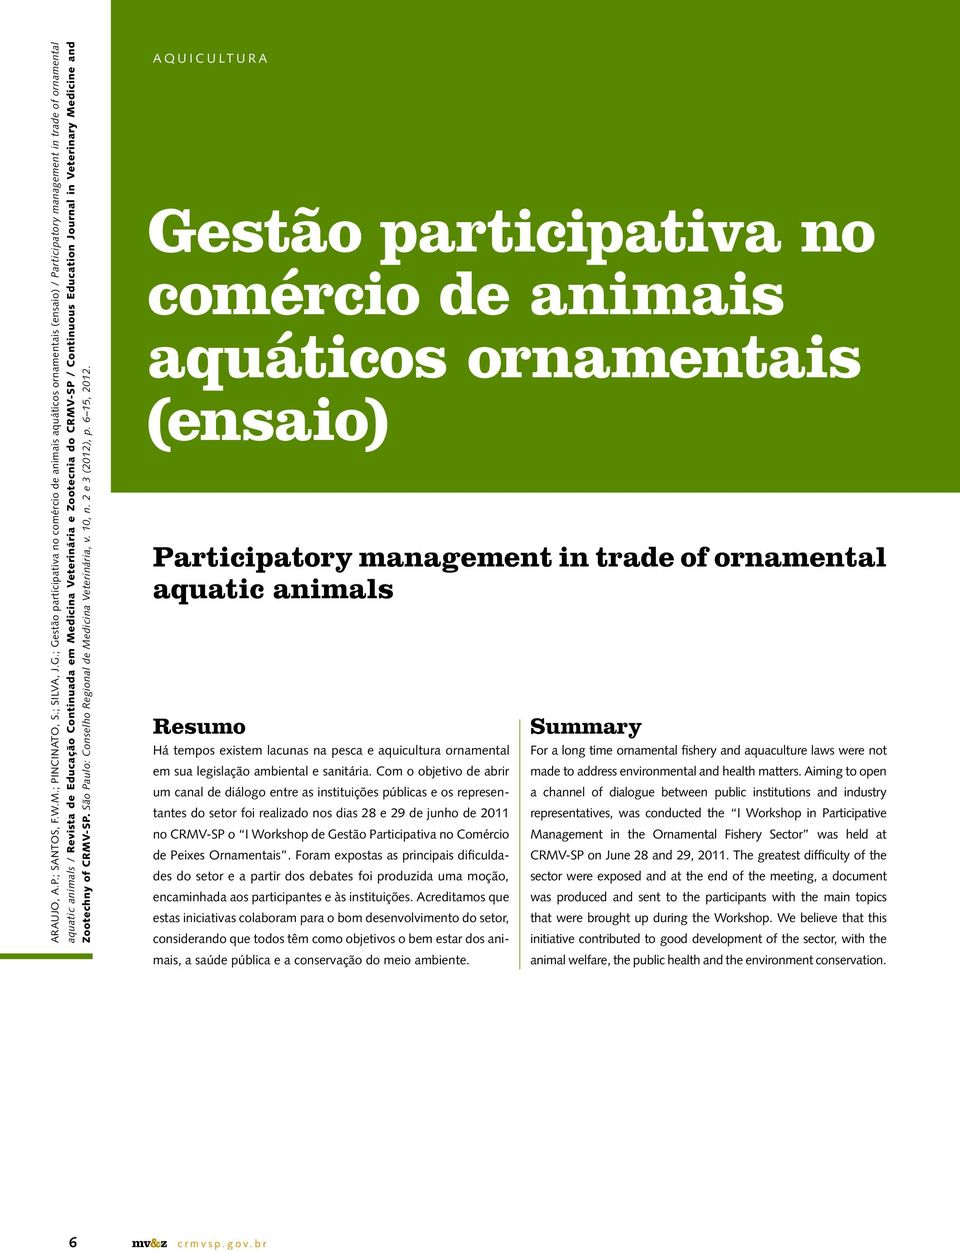 e Zootecnia do CRMV-SP / Continuous Education Journal in Veterinary Medicine and Zootechny of CRMV-SP. São Paulo: Conselho Regional de Medicina Veterinária, v. 10, n. 2 e 3 (2012), p. 6 15, 2012.